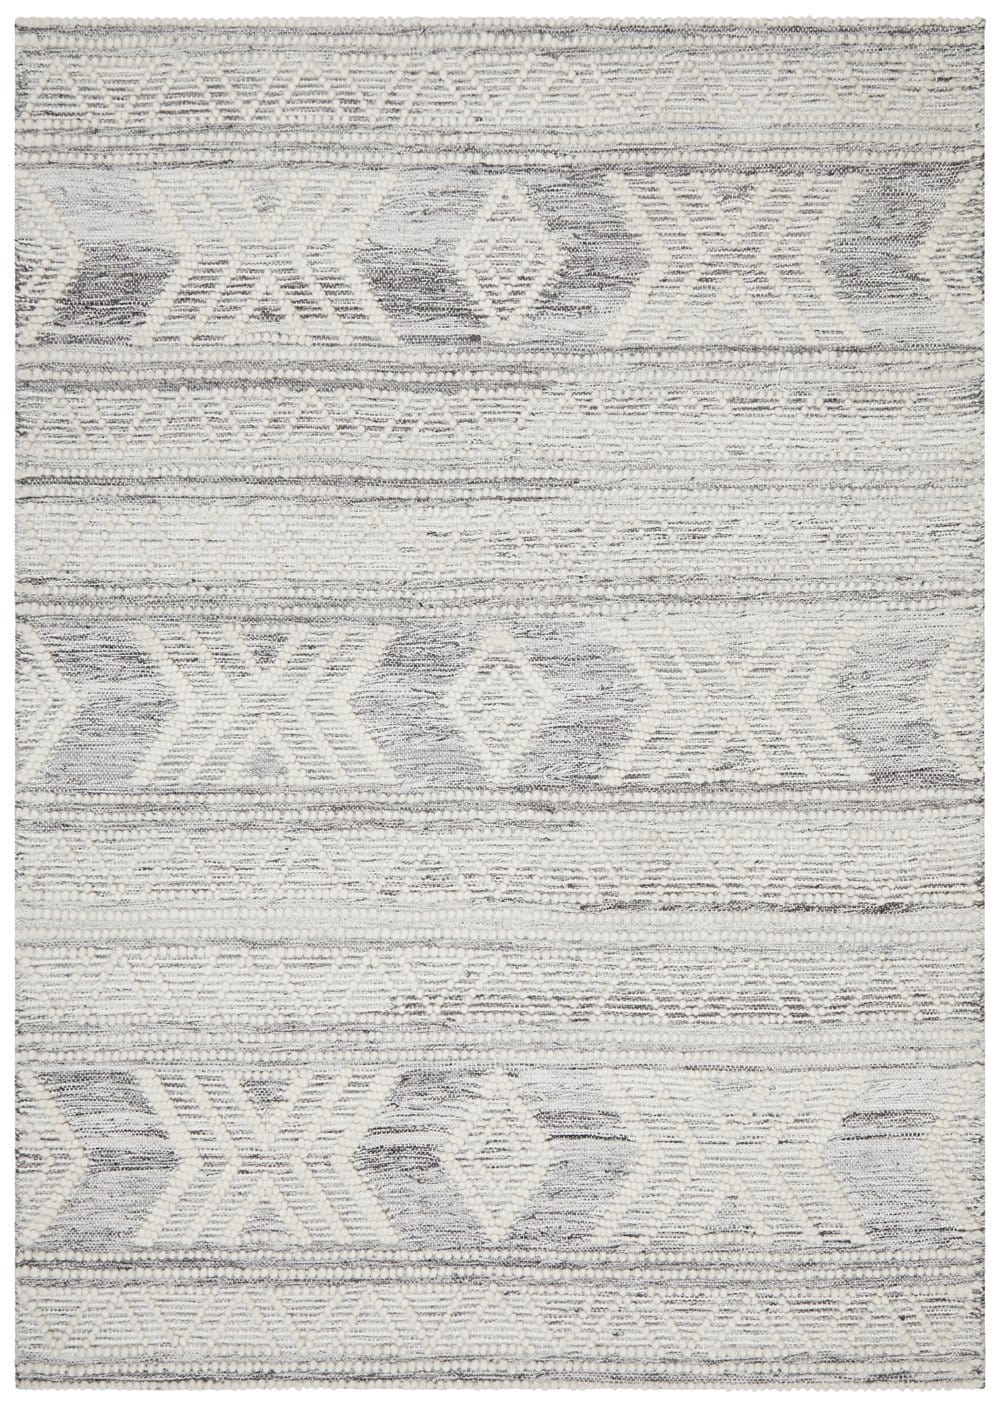 Telluride Silver Grey and Ivory Textural Tribal Flatweave Rug